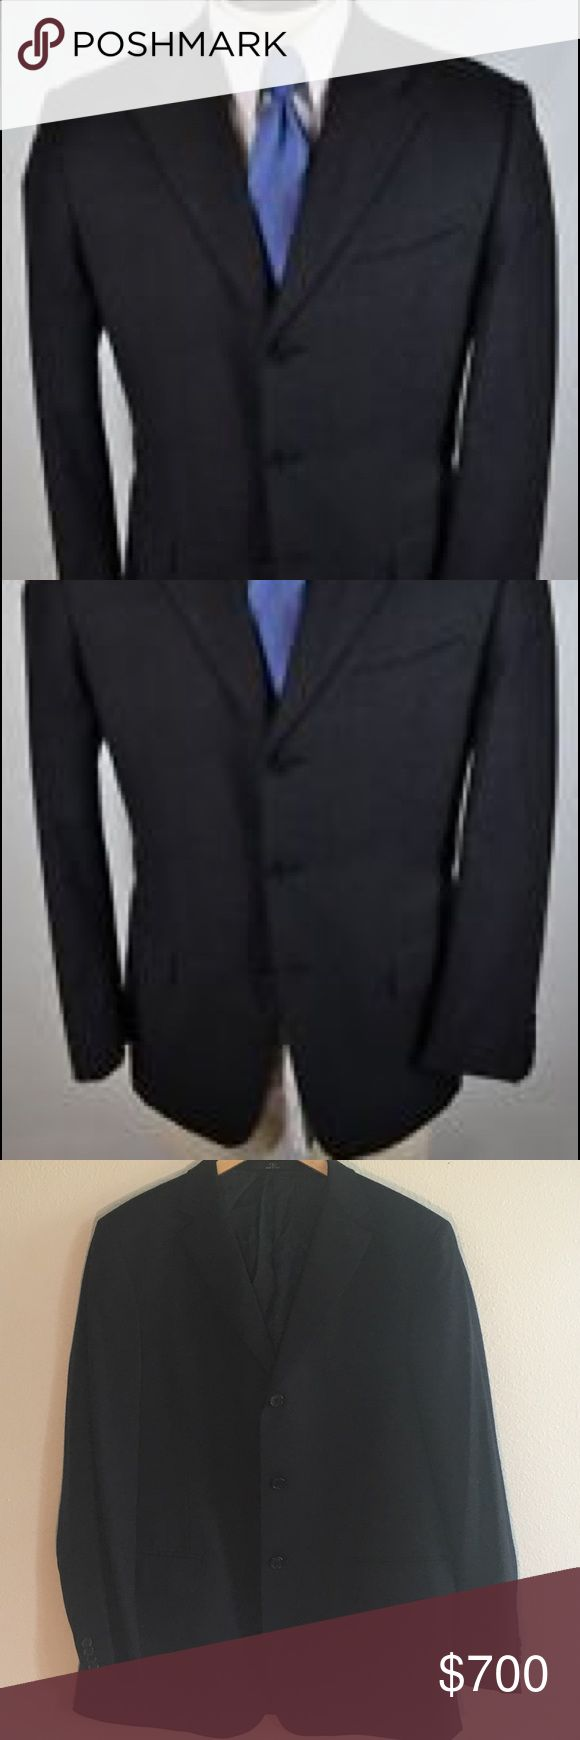 ⭐️HOST PICK⭐️Valentino Spa Mens Black Wool Blazer Valentino Spa Mens Black Wool Three Button Blazer Jacket Size 46 regular This black blazer from Valentino features wool and rayon construction for an elegant look and feel. A three-button, notched lapel jacket with three external pockets and four internal pockets complete this classic look. Excellent condition. Never worn. Valentino Jackets & Coats